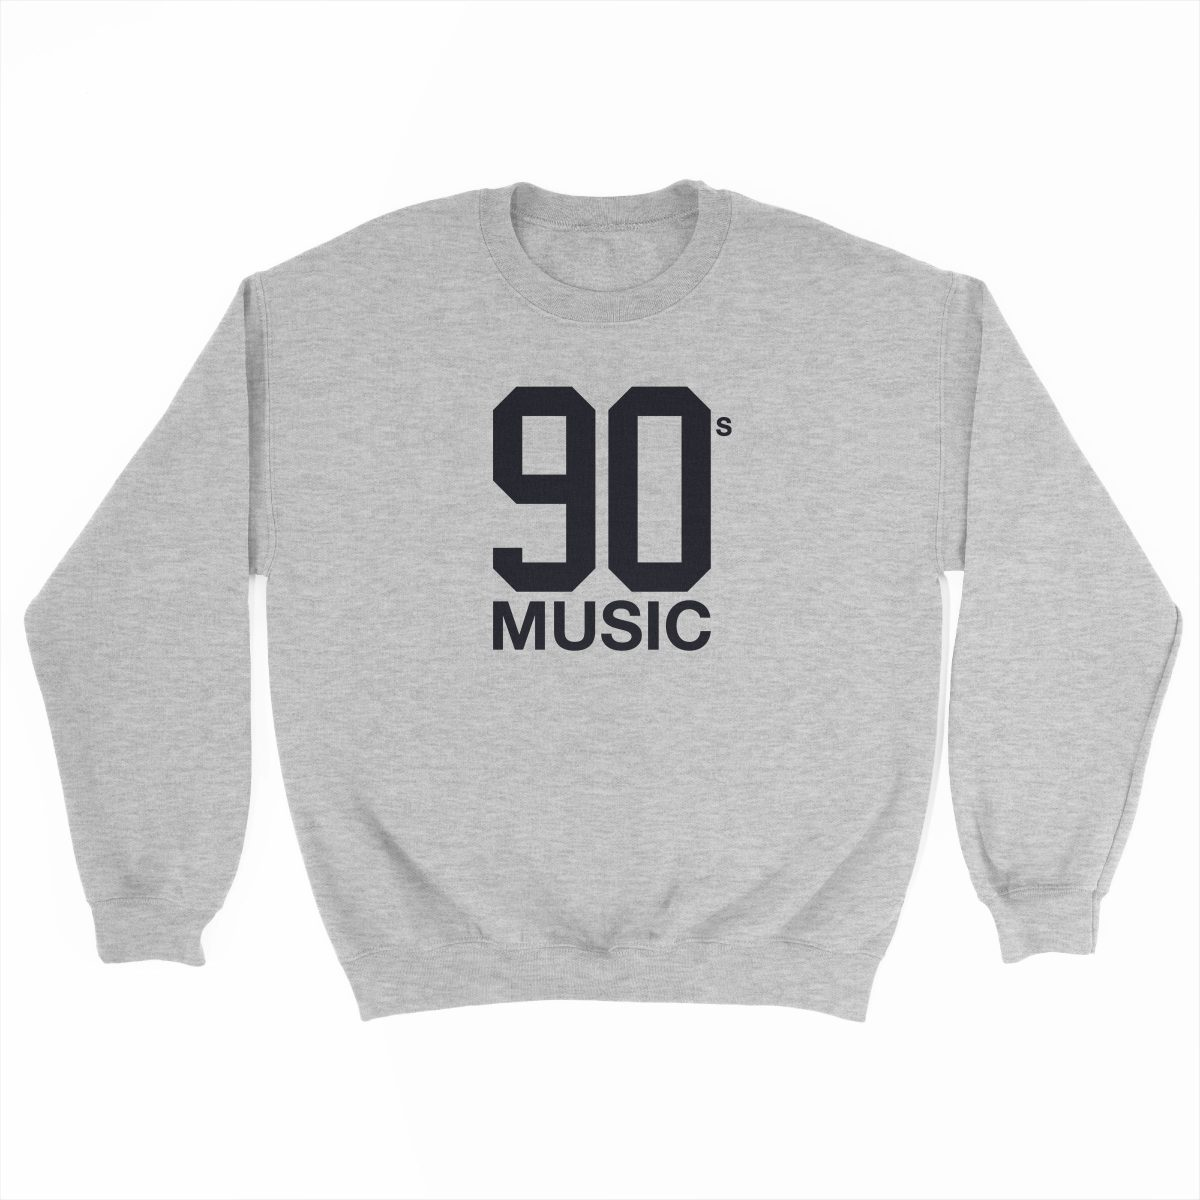 90s MUSIC sport grey crew sweatshirt by kikicutt